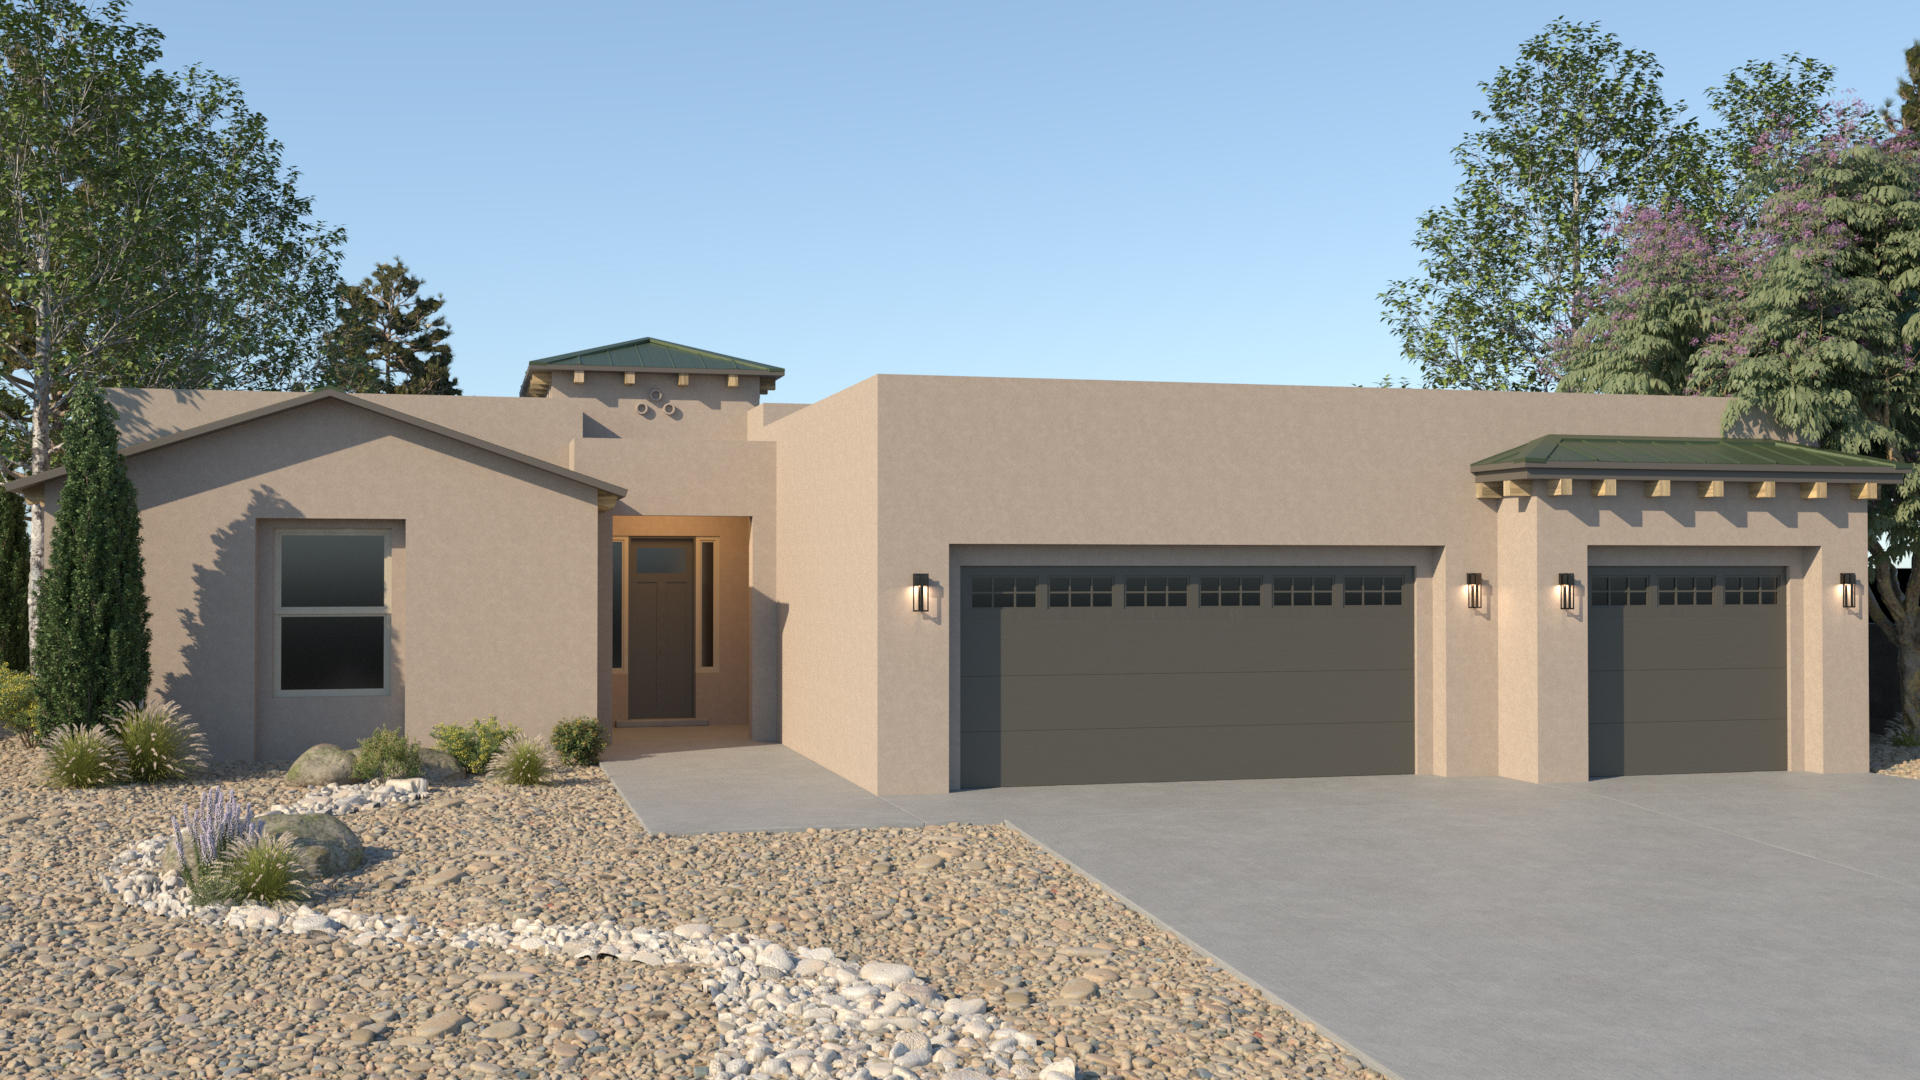 This BRAND NEW RayLee Home is one of our most sold floor plans, open concept, 4 bedrooms, 3 full bathroom PLUS a flex space/Office space AND a 3 car garage. This one checks all the boxes. Don't miss out, there is still a little bit of time to make it your own... Construction is starting asap! Bring in the New Year (2021) with a brand new RayLee Home in Mariposa. The Community amenities are pretty awesome too! Gym, indoor and outdoor pools, walking trails and large parks!